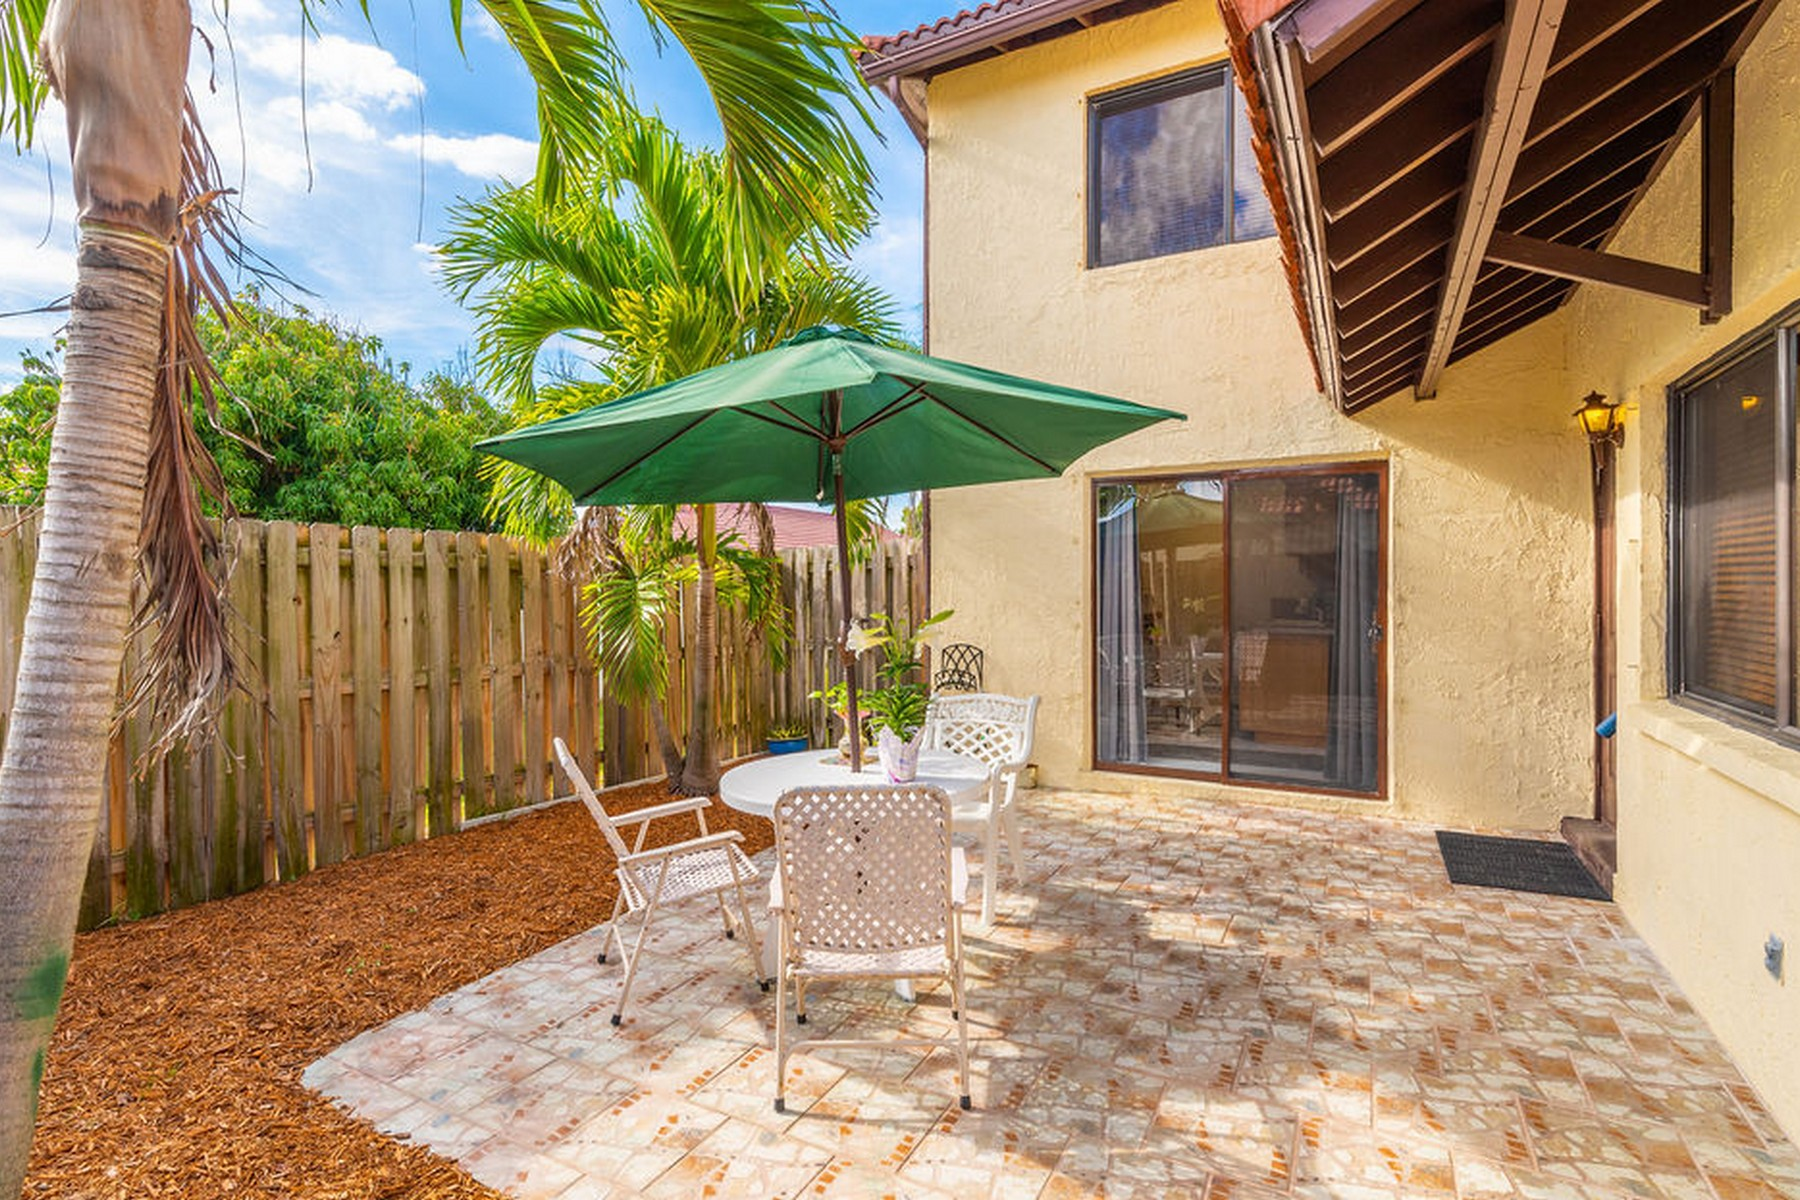 Property for Sale at Townhome in River to Ocean Community 3186 Beach Winds Ct Melbourne Beach, Florida 32951 United States